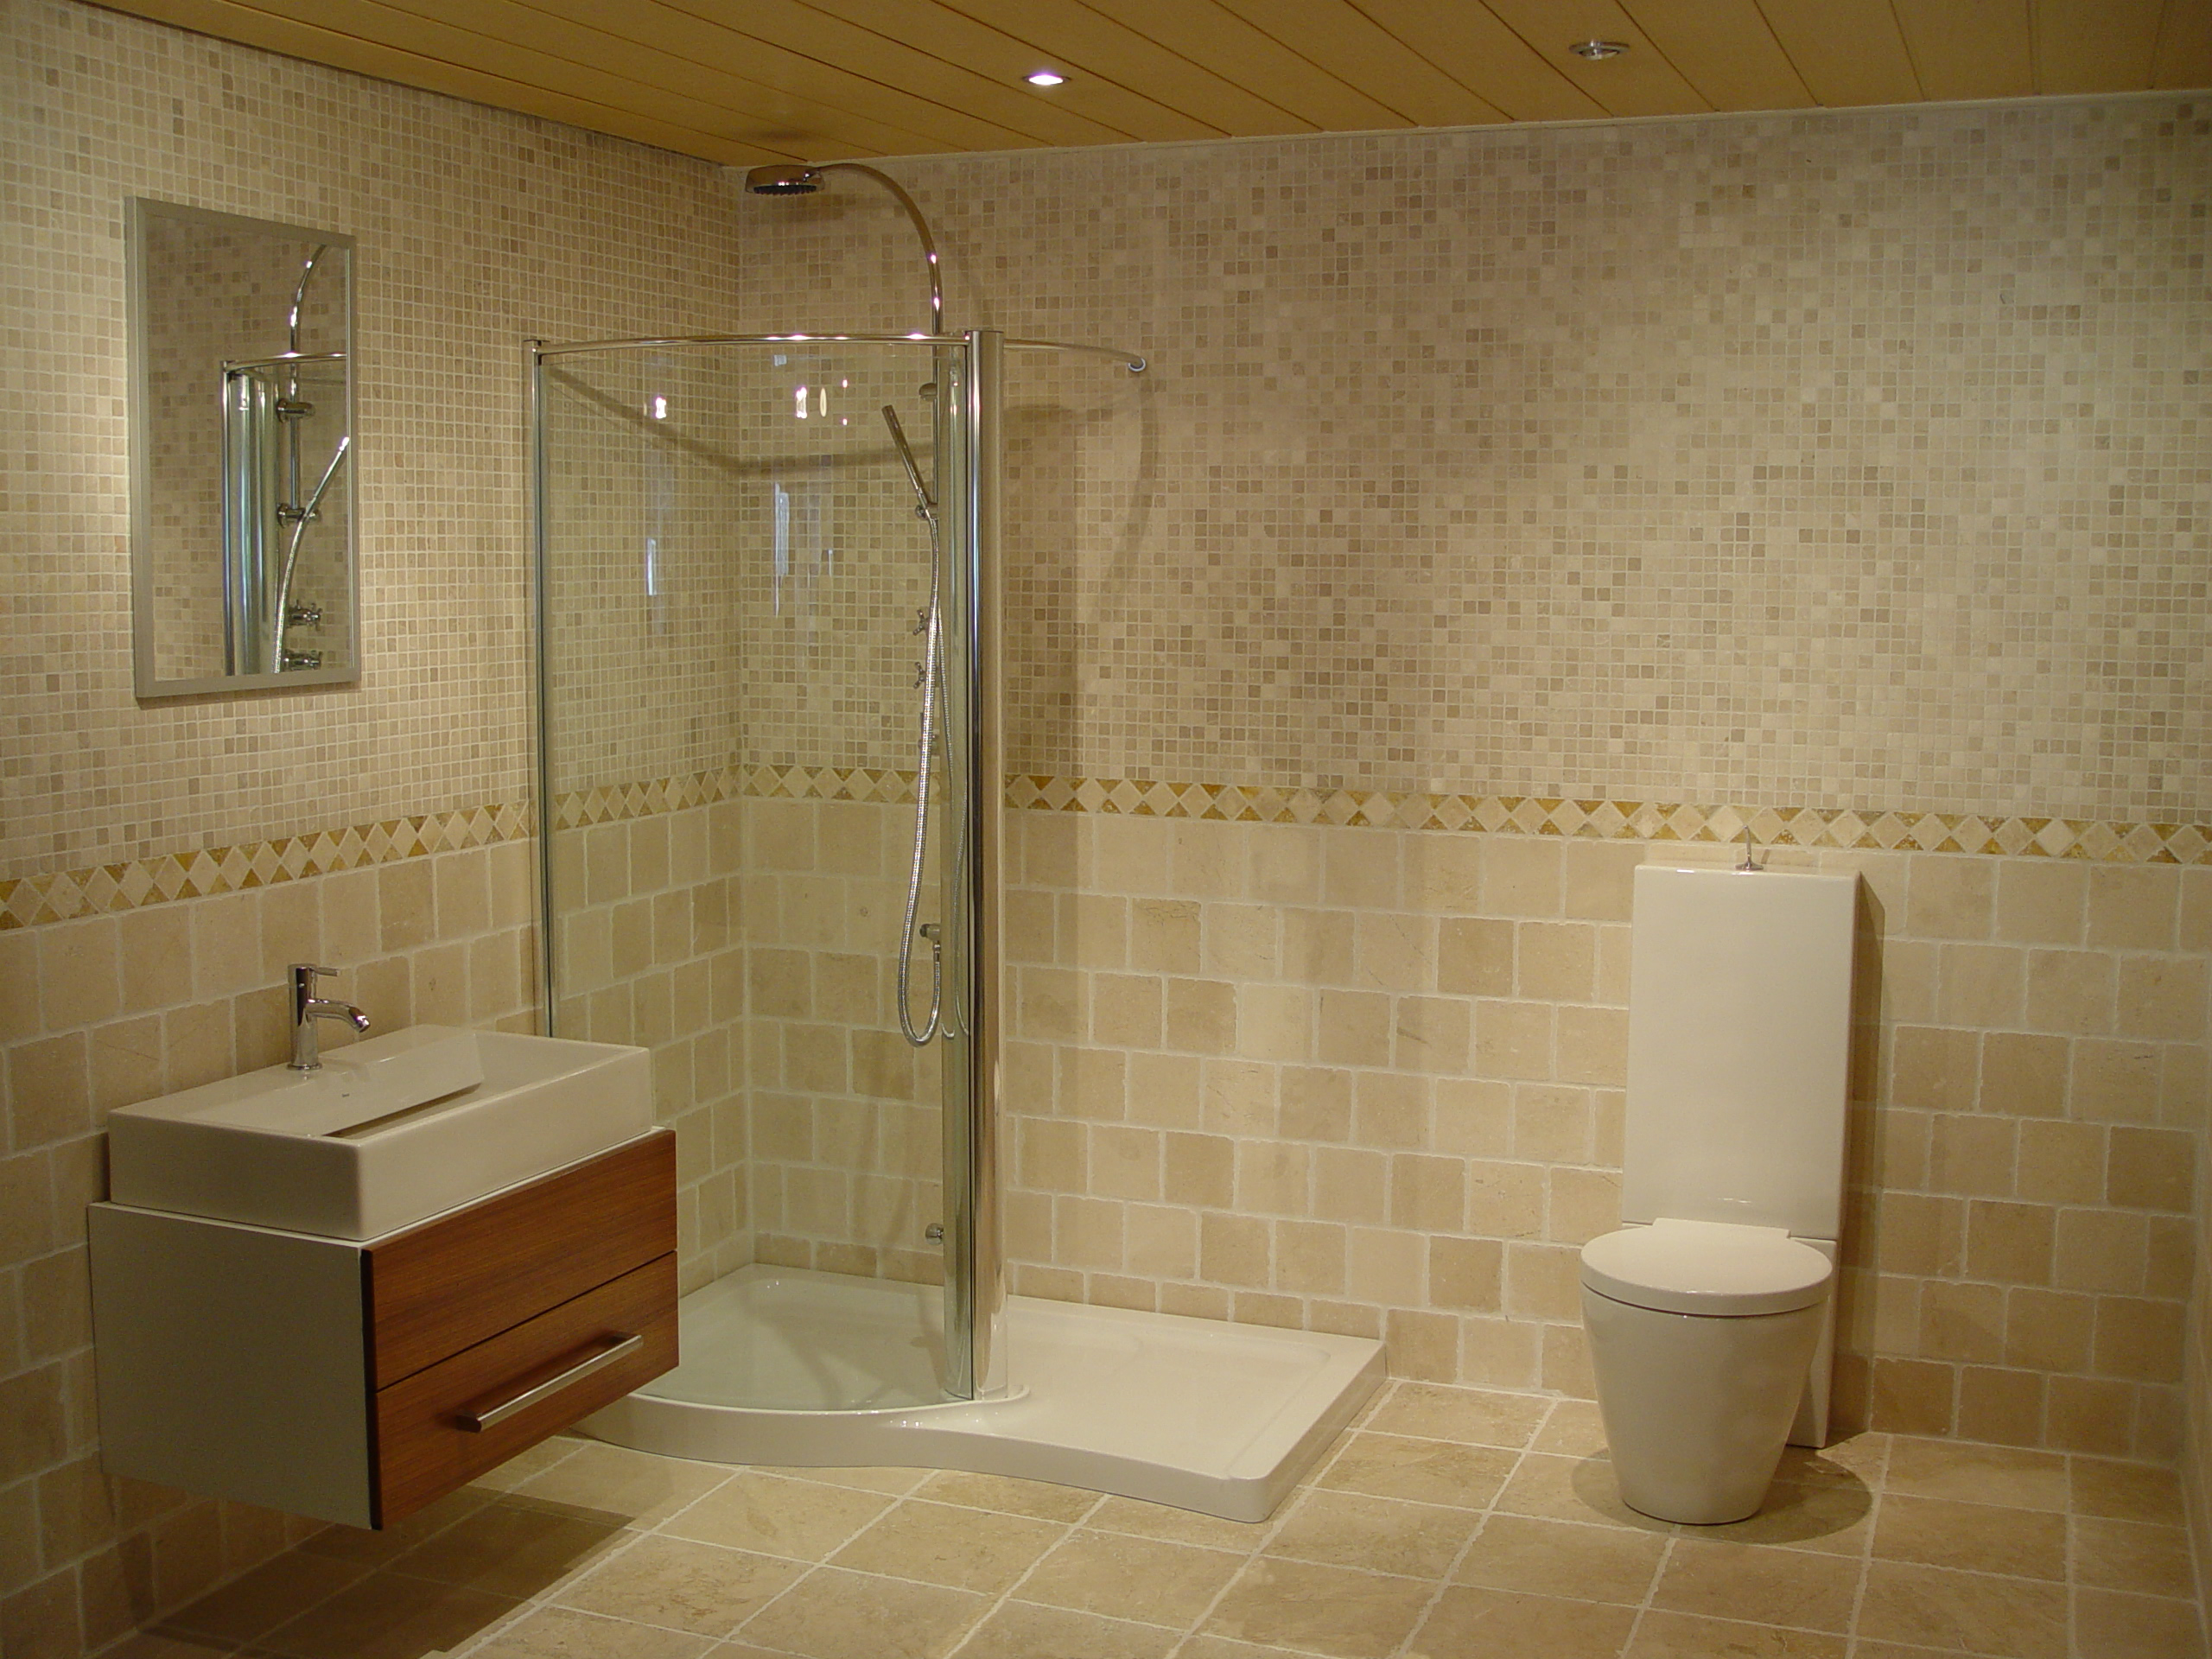 Bathroom tiling ideas Photo - 1